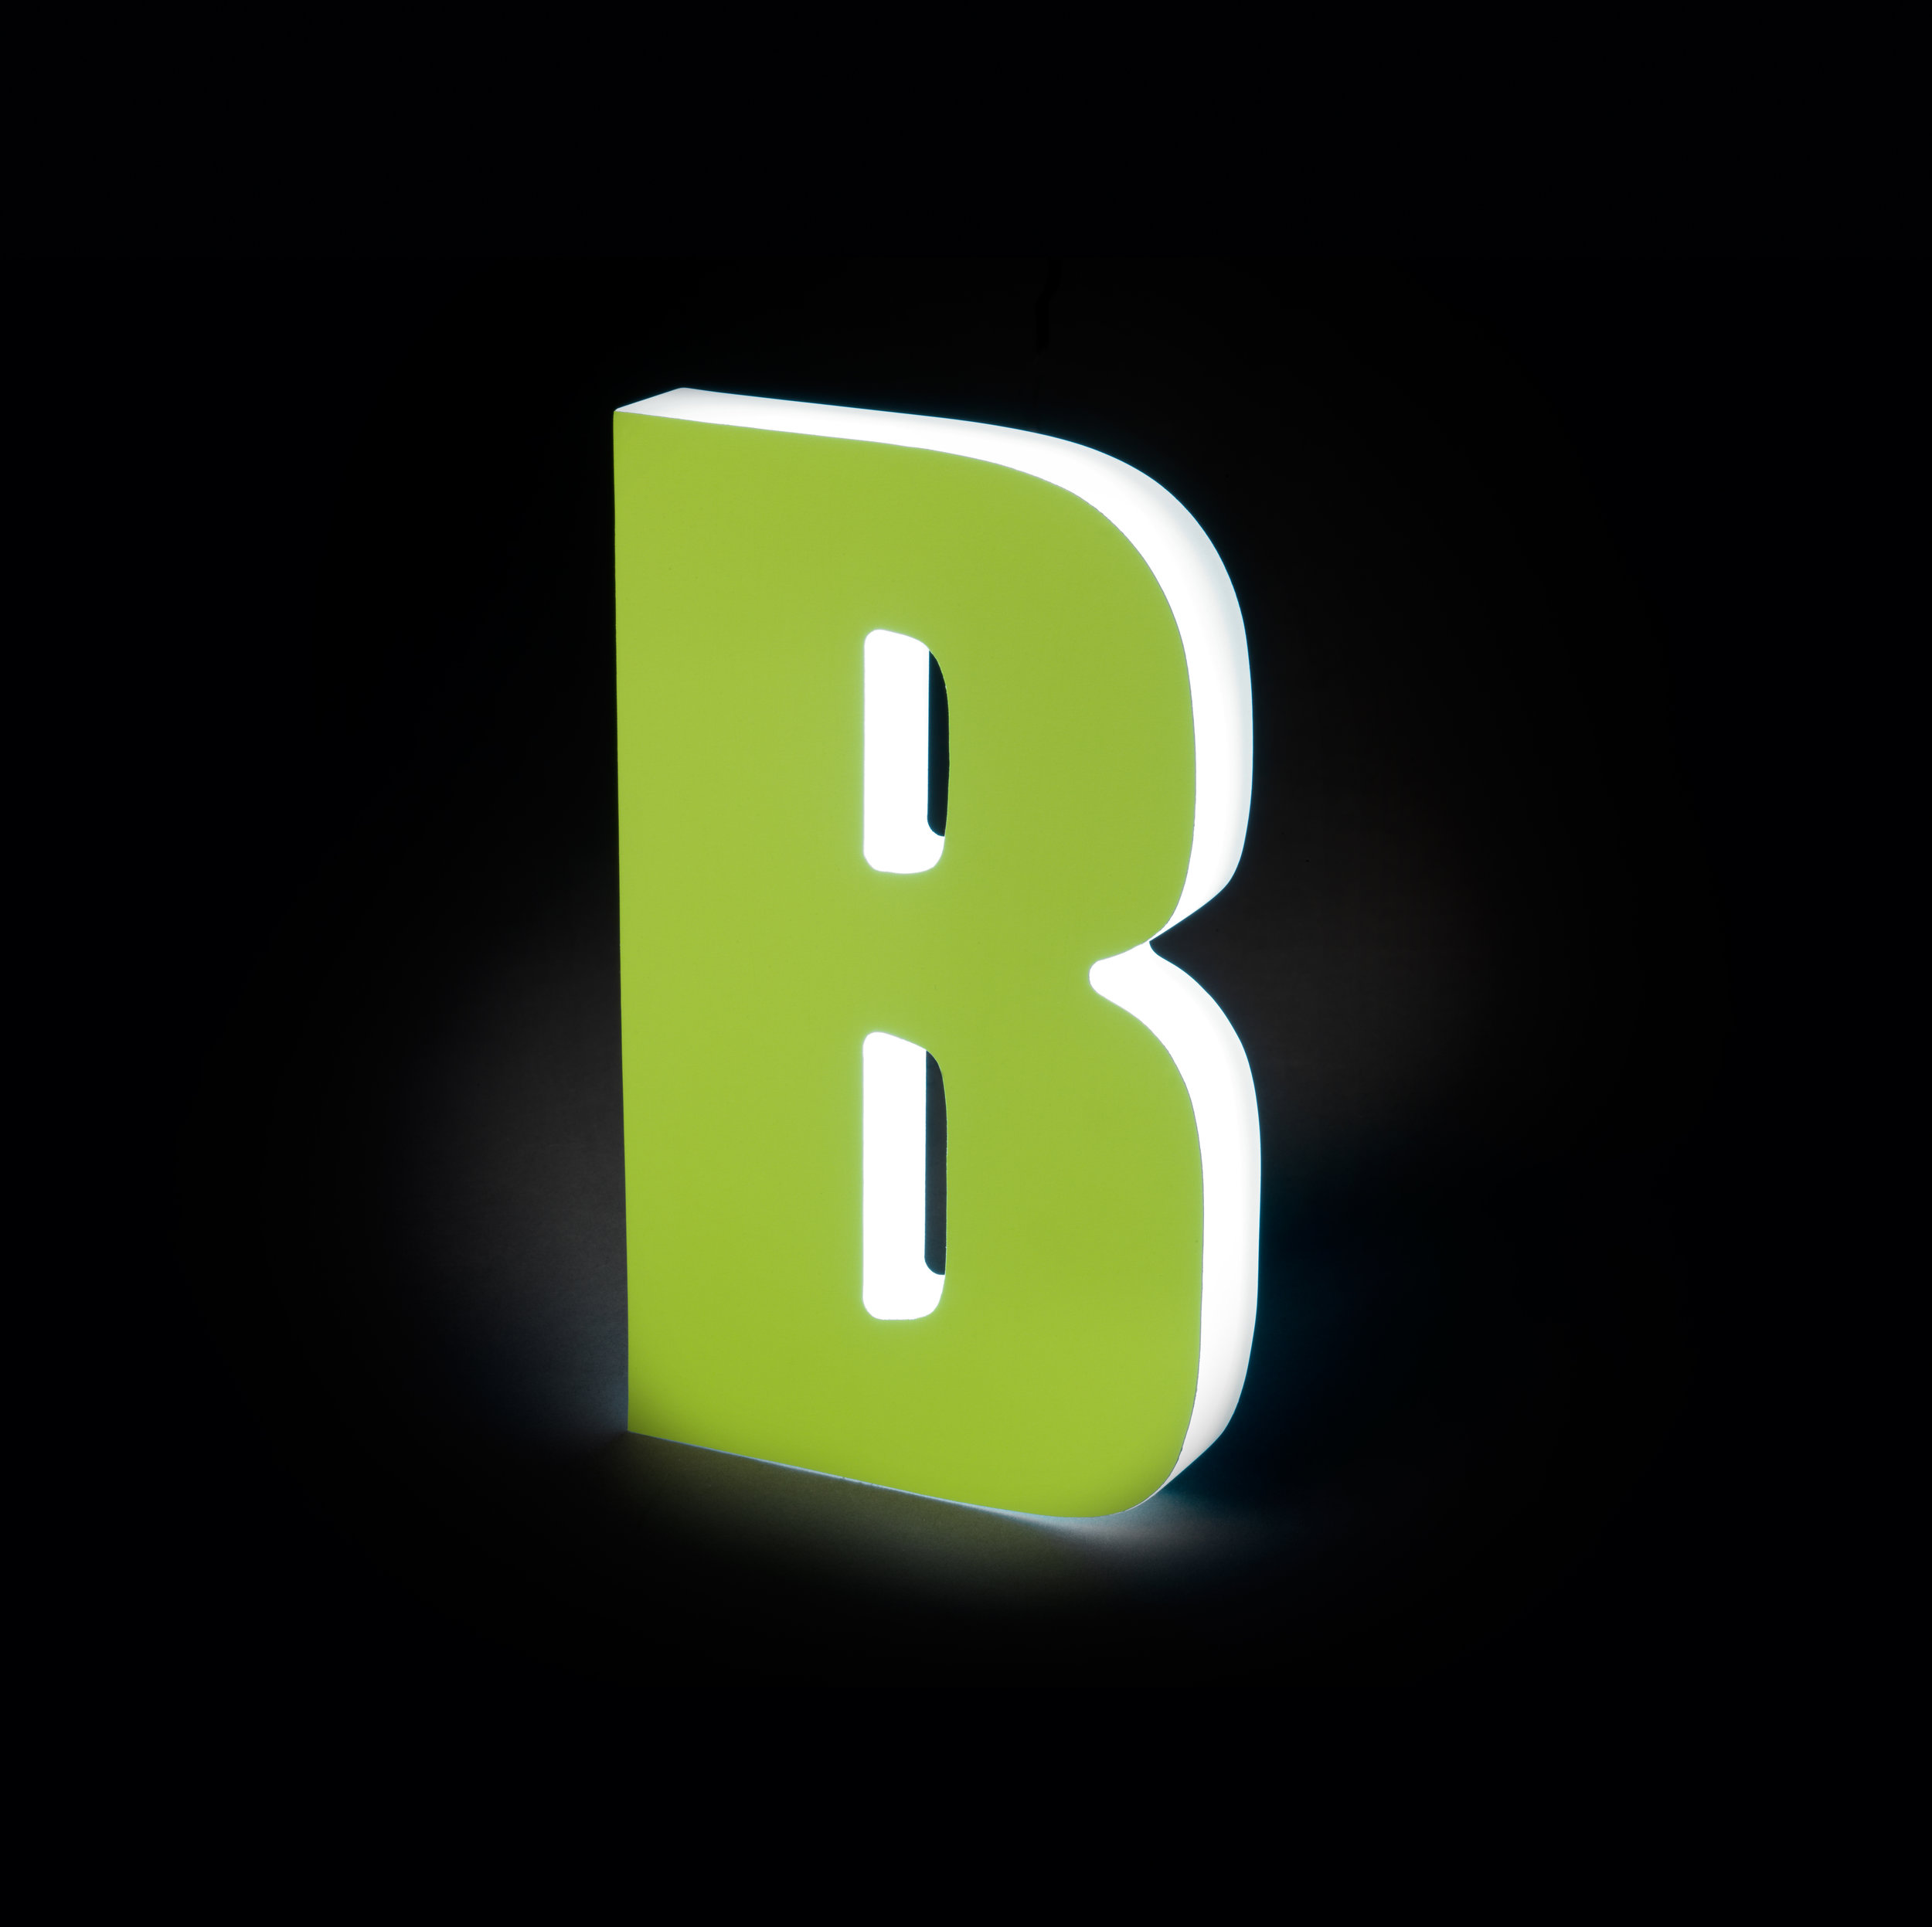 Sidelit Neon Green Vinyl Face with Glowing Sides